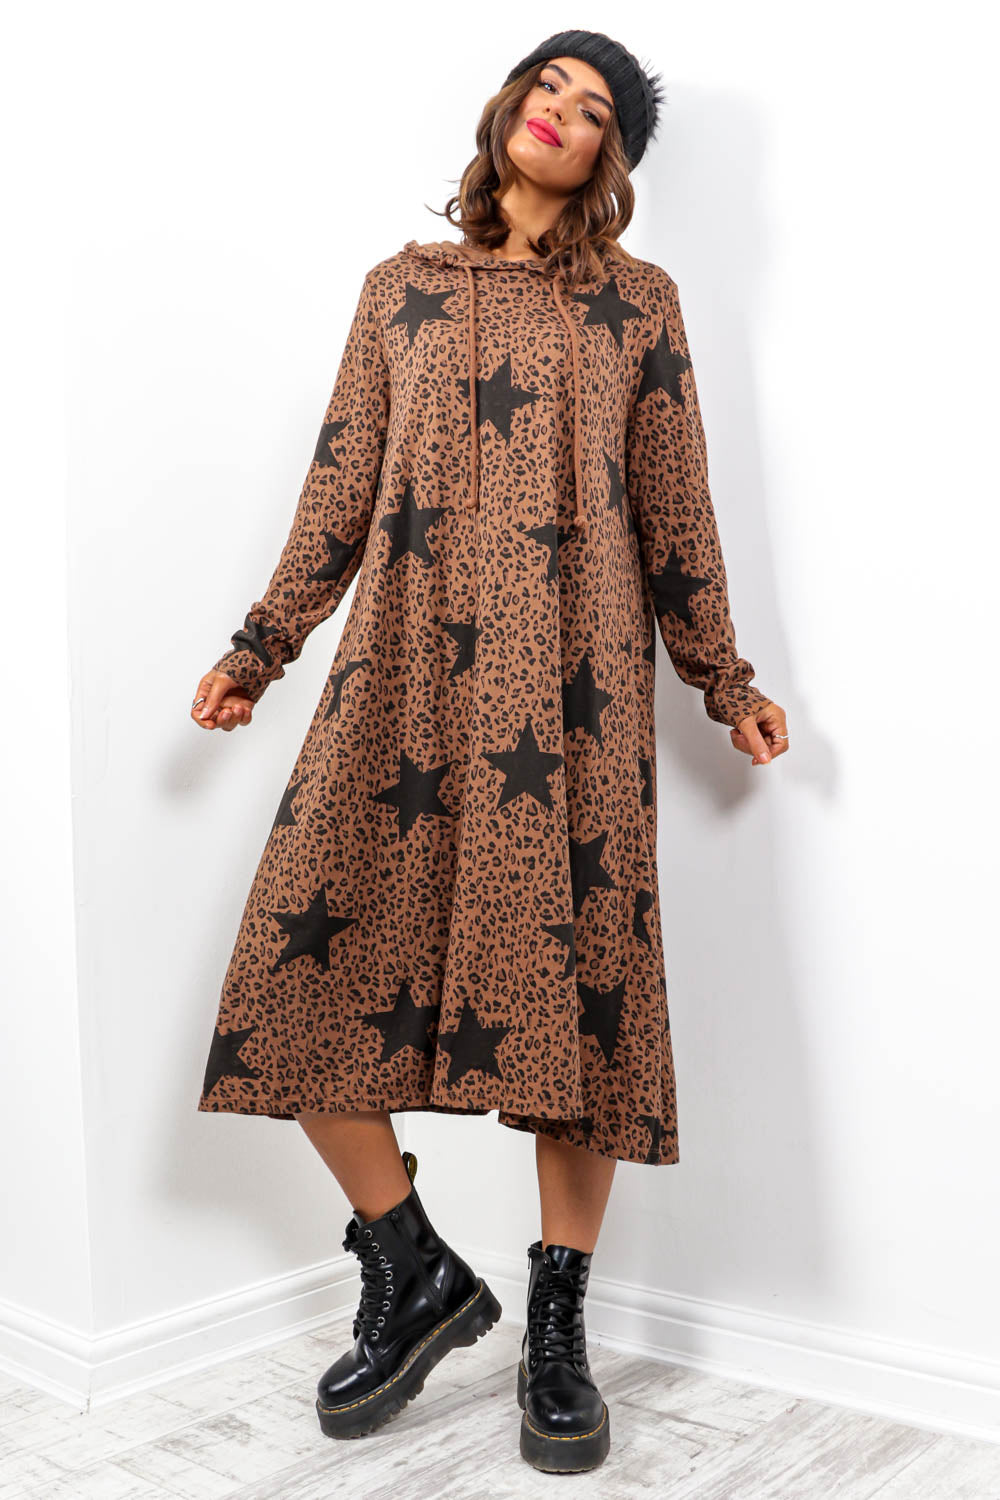 Chill Vibes - Camel Leopard Star Print Hoodie Dress